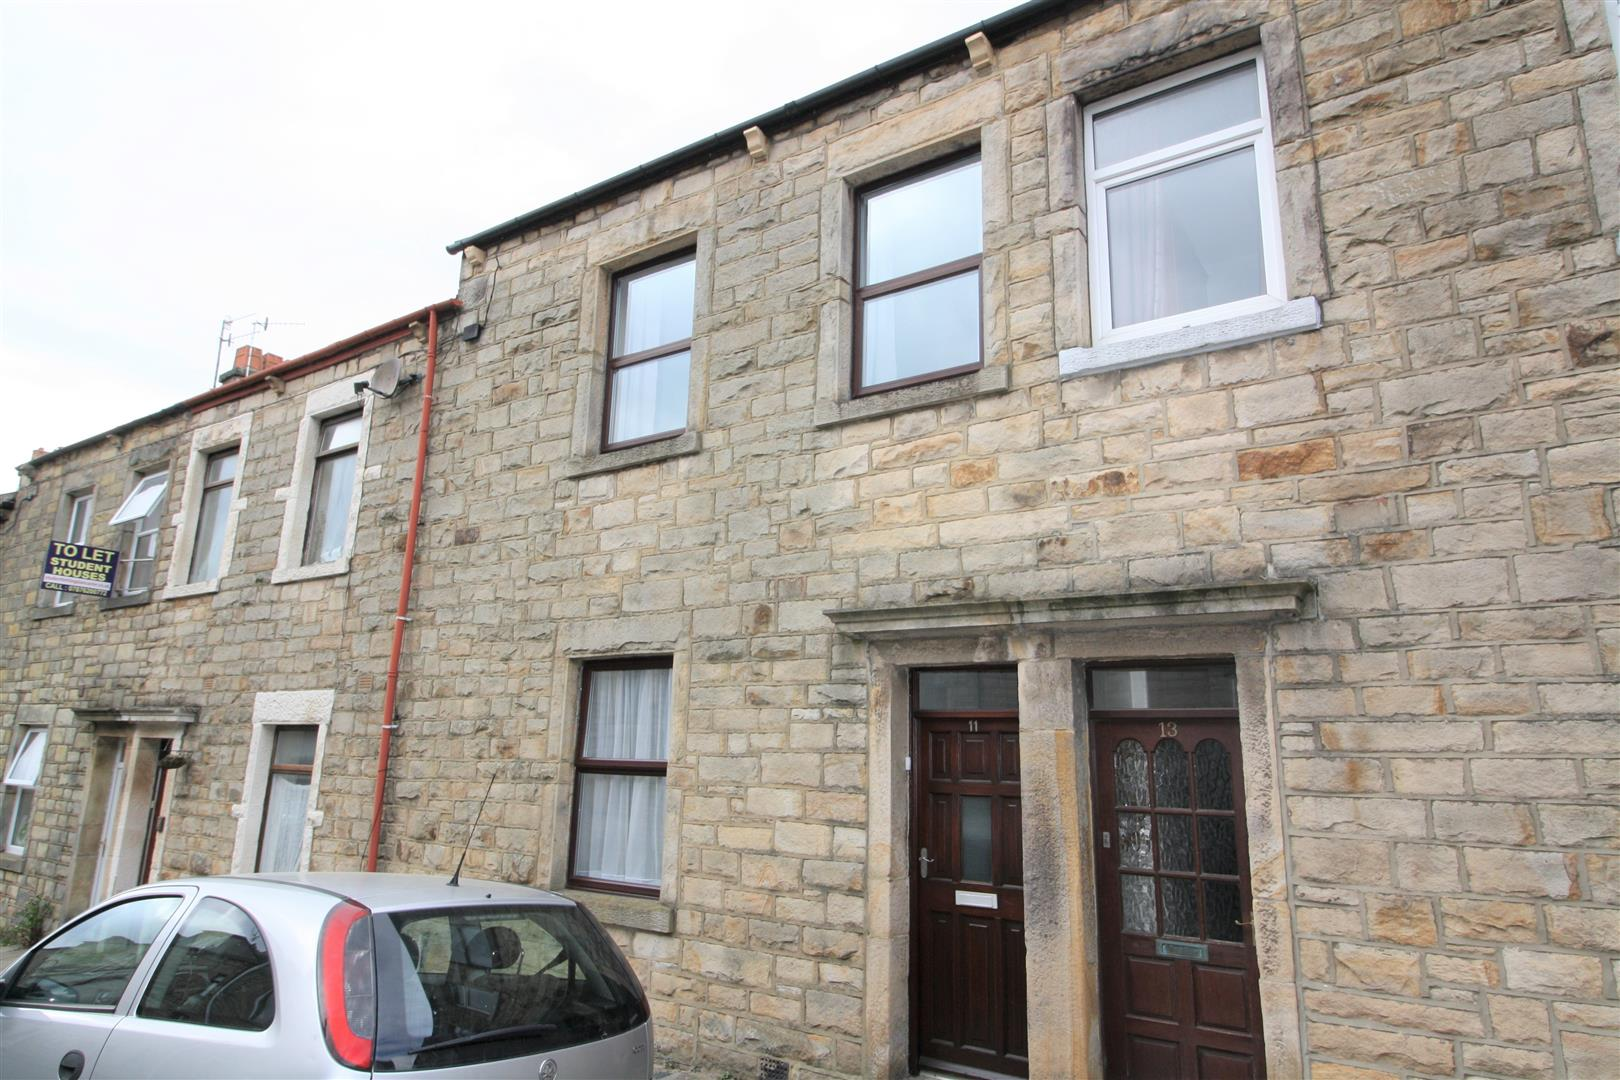 11 Havelock Street, Lancaster, LA1 4AD